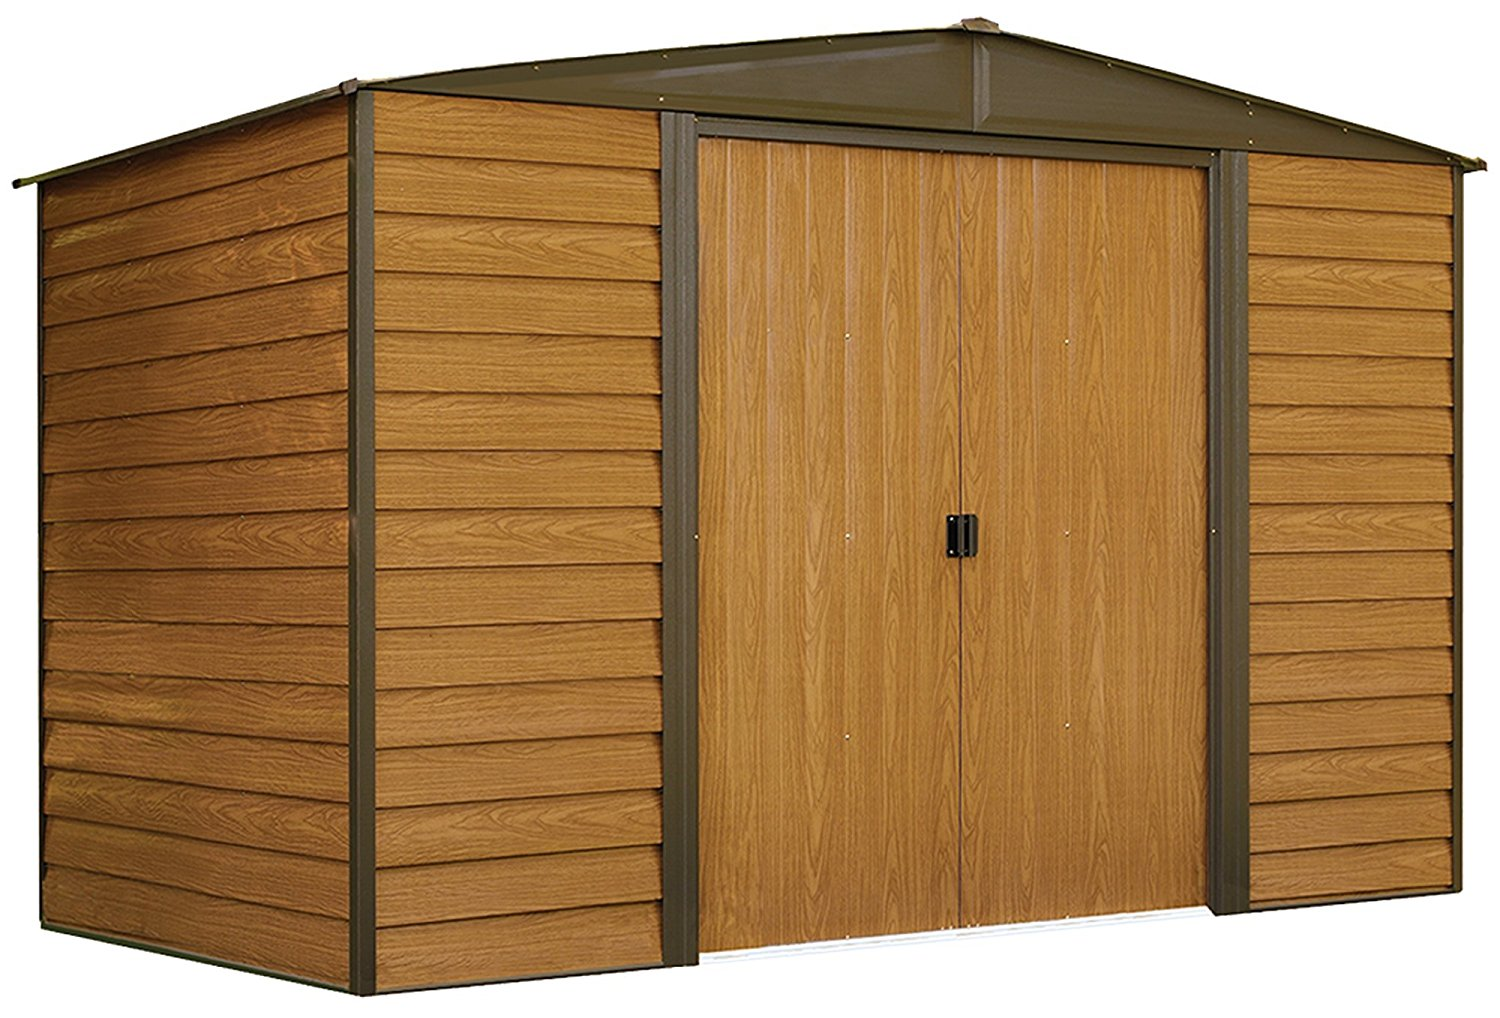 Arrow Woodridge Steel Storage Shed